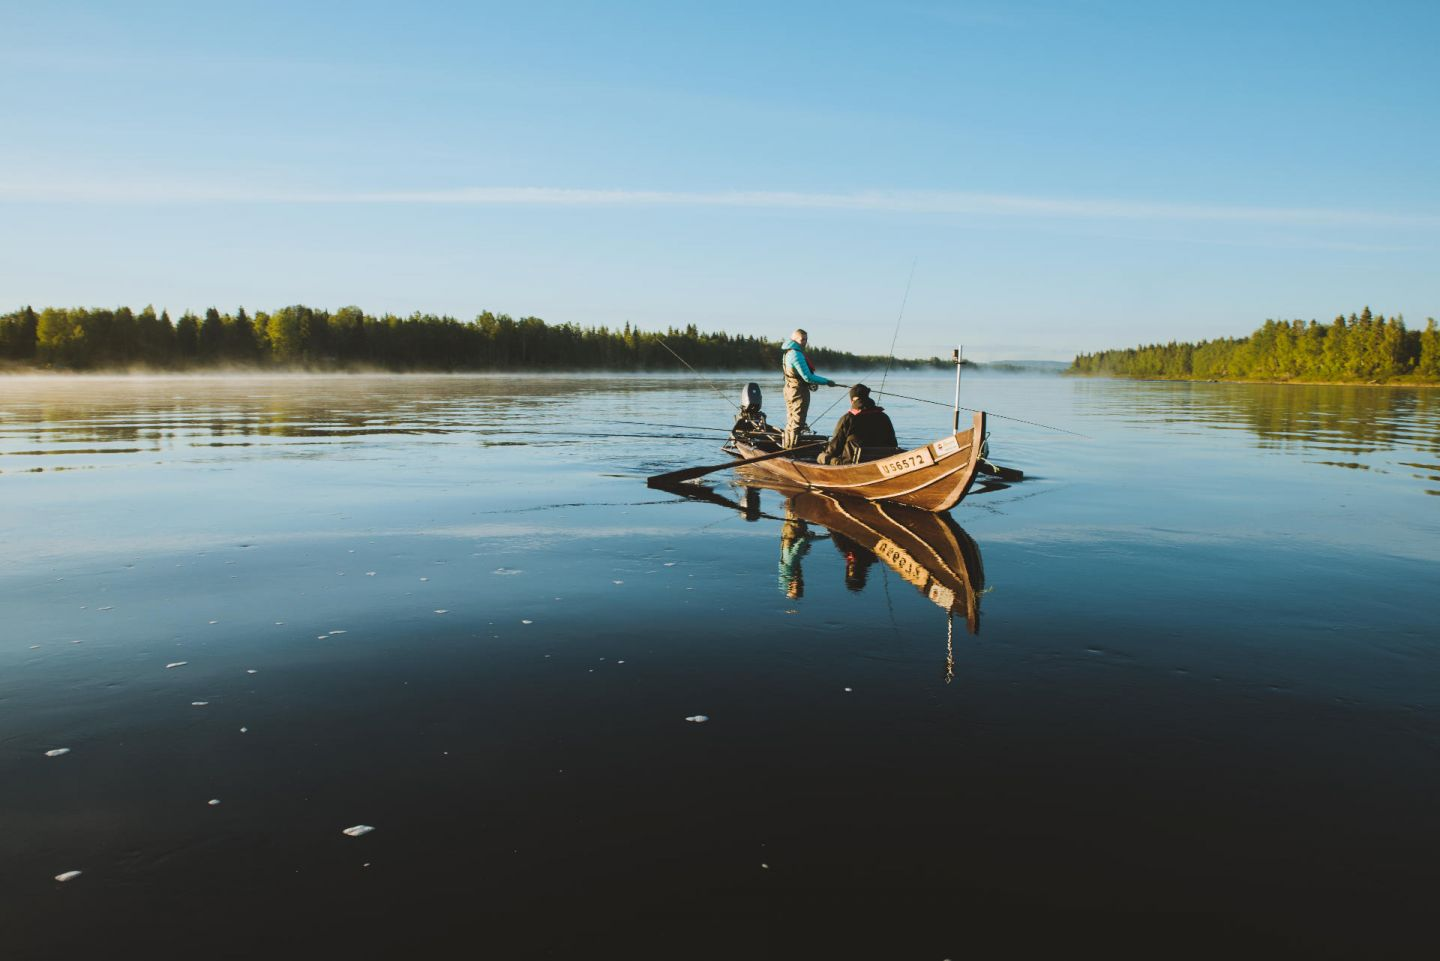 Fishing from rowboat in Pello, Finland in summer